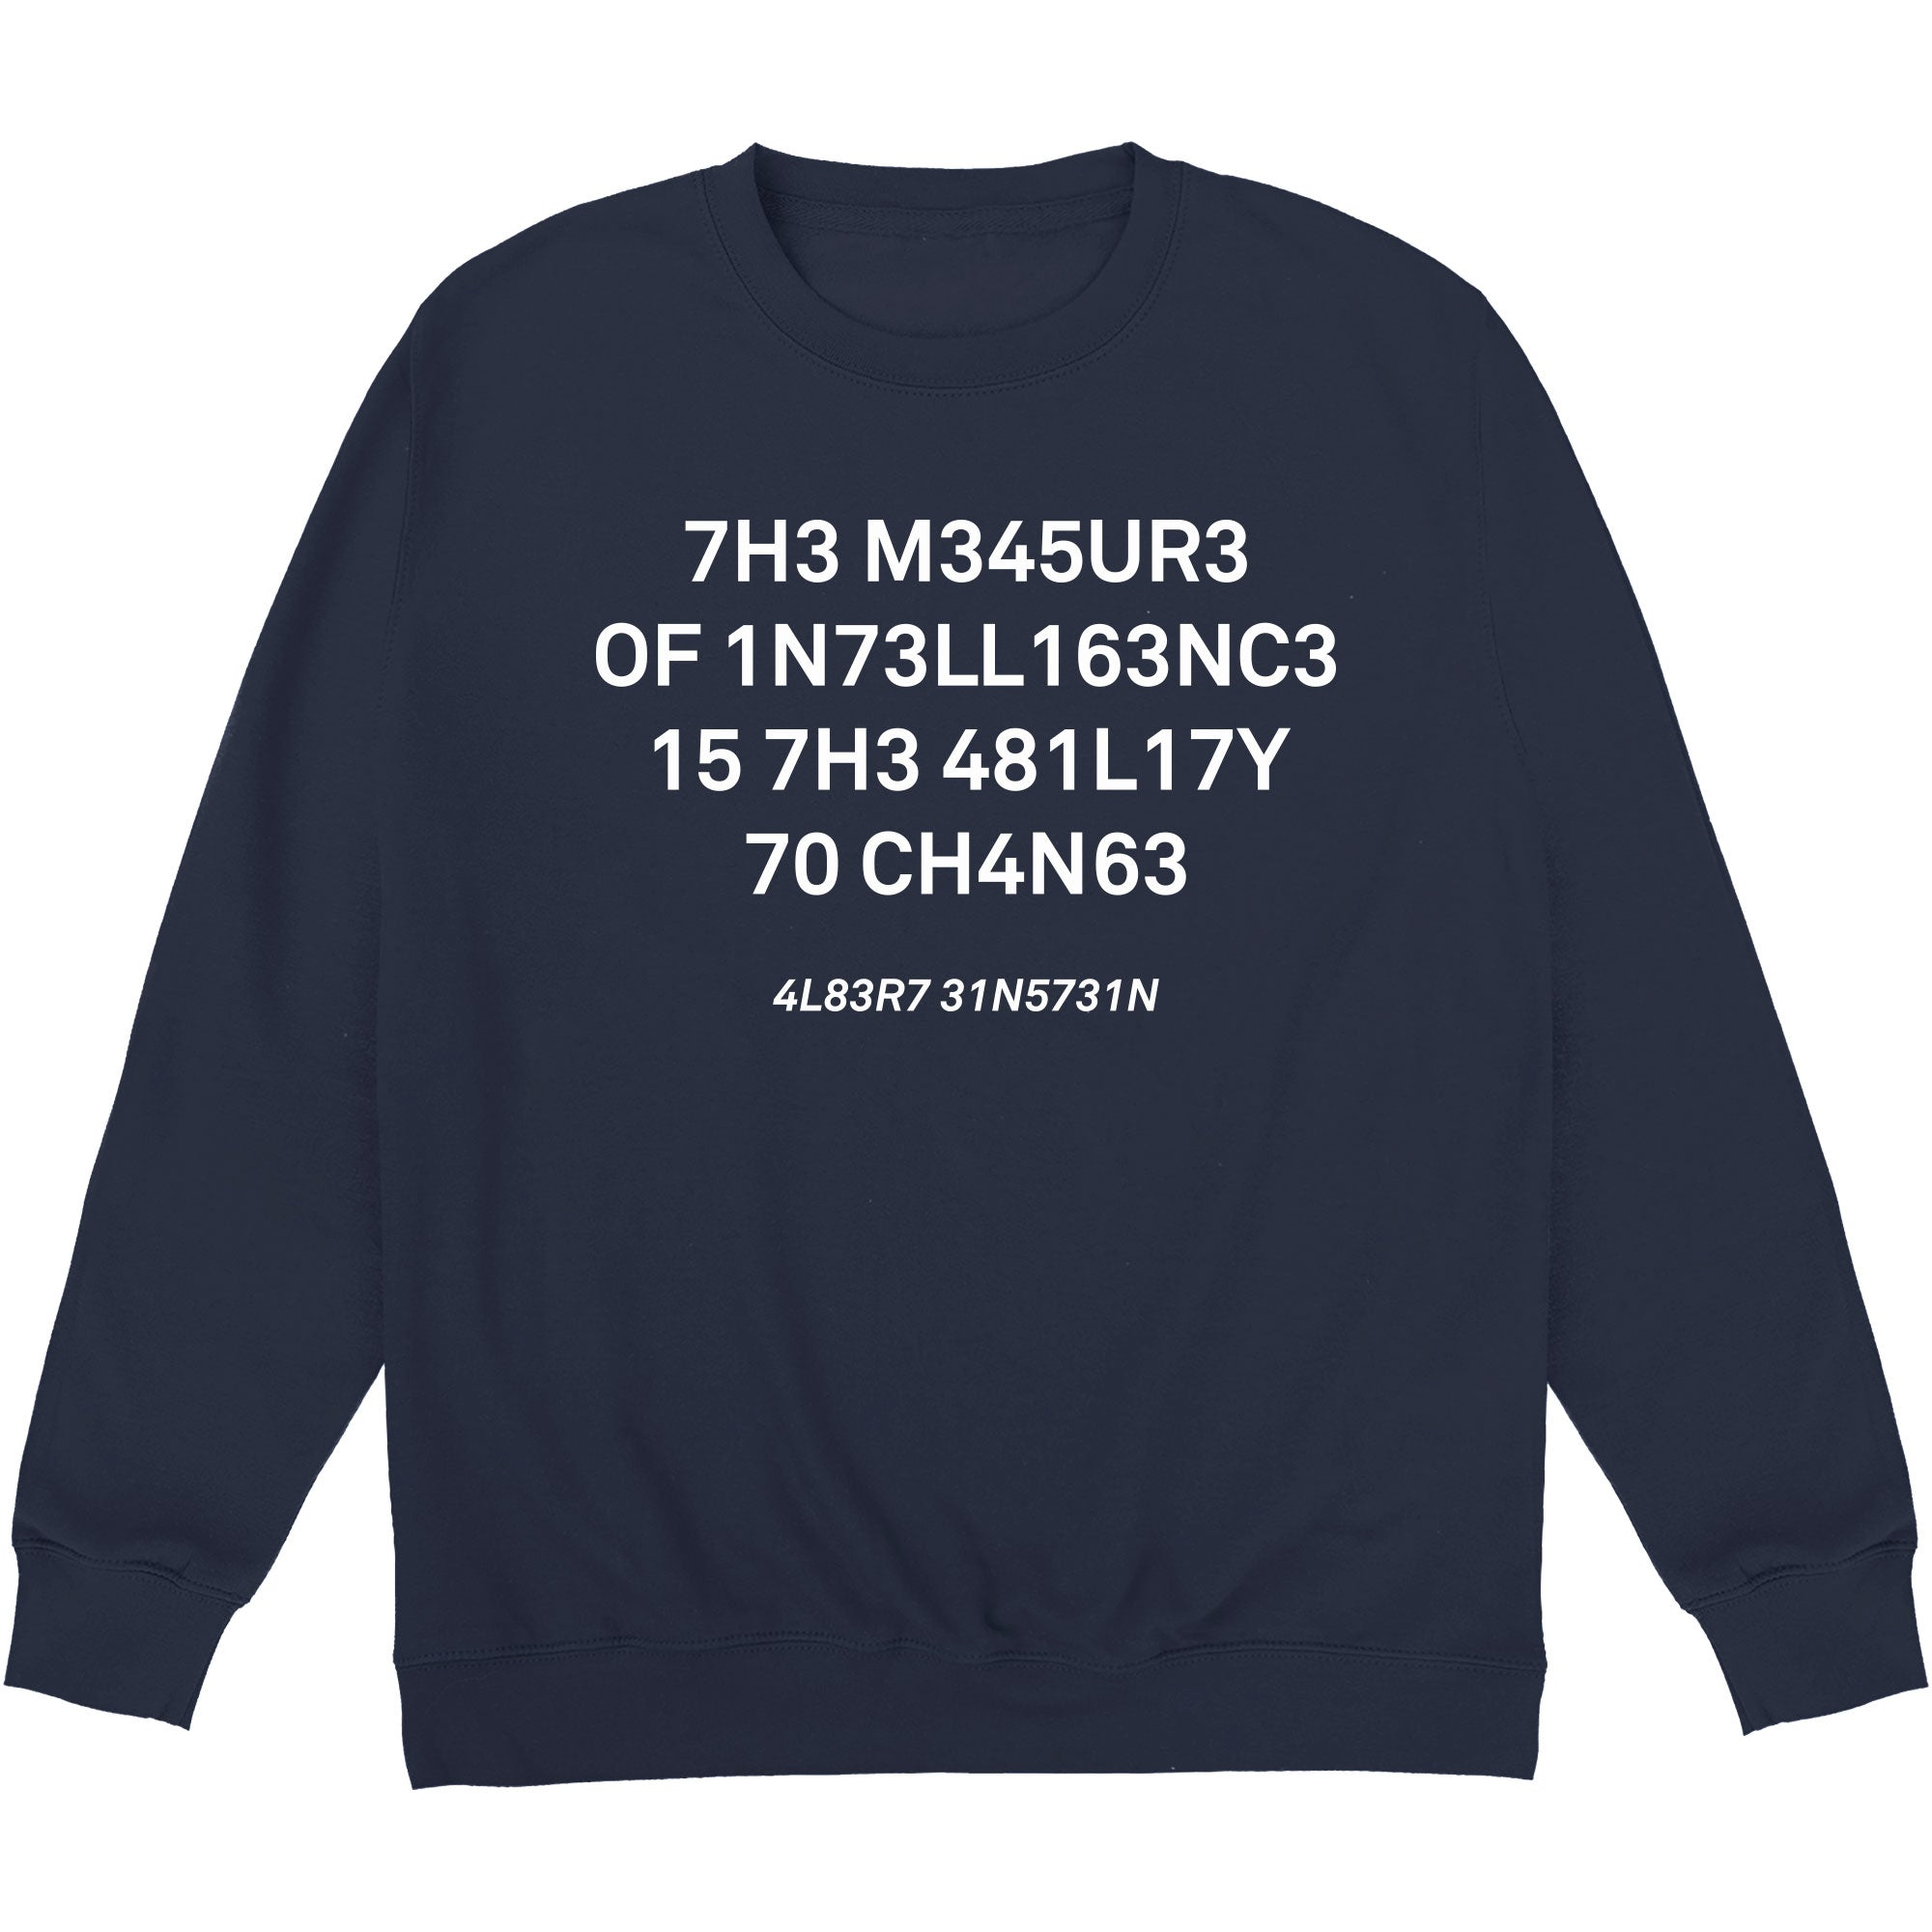 CHEAP The Measure of Intelligence Sweatshirt 24322678169 – Clothing Accessories